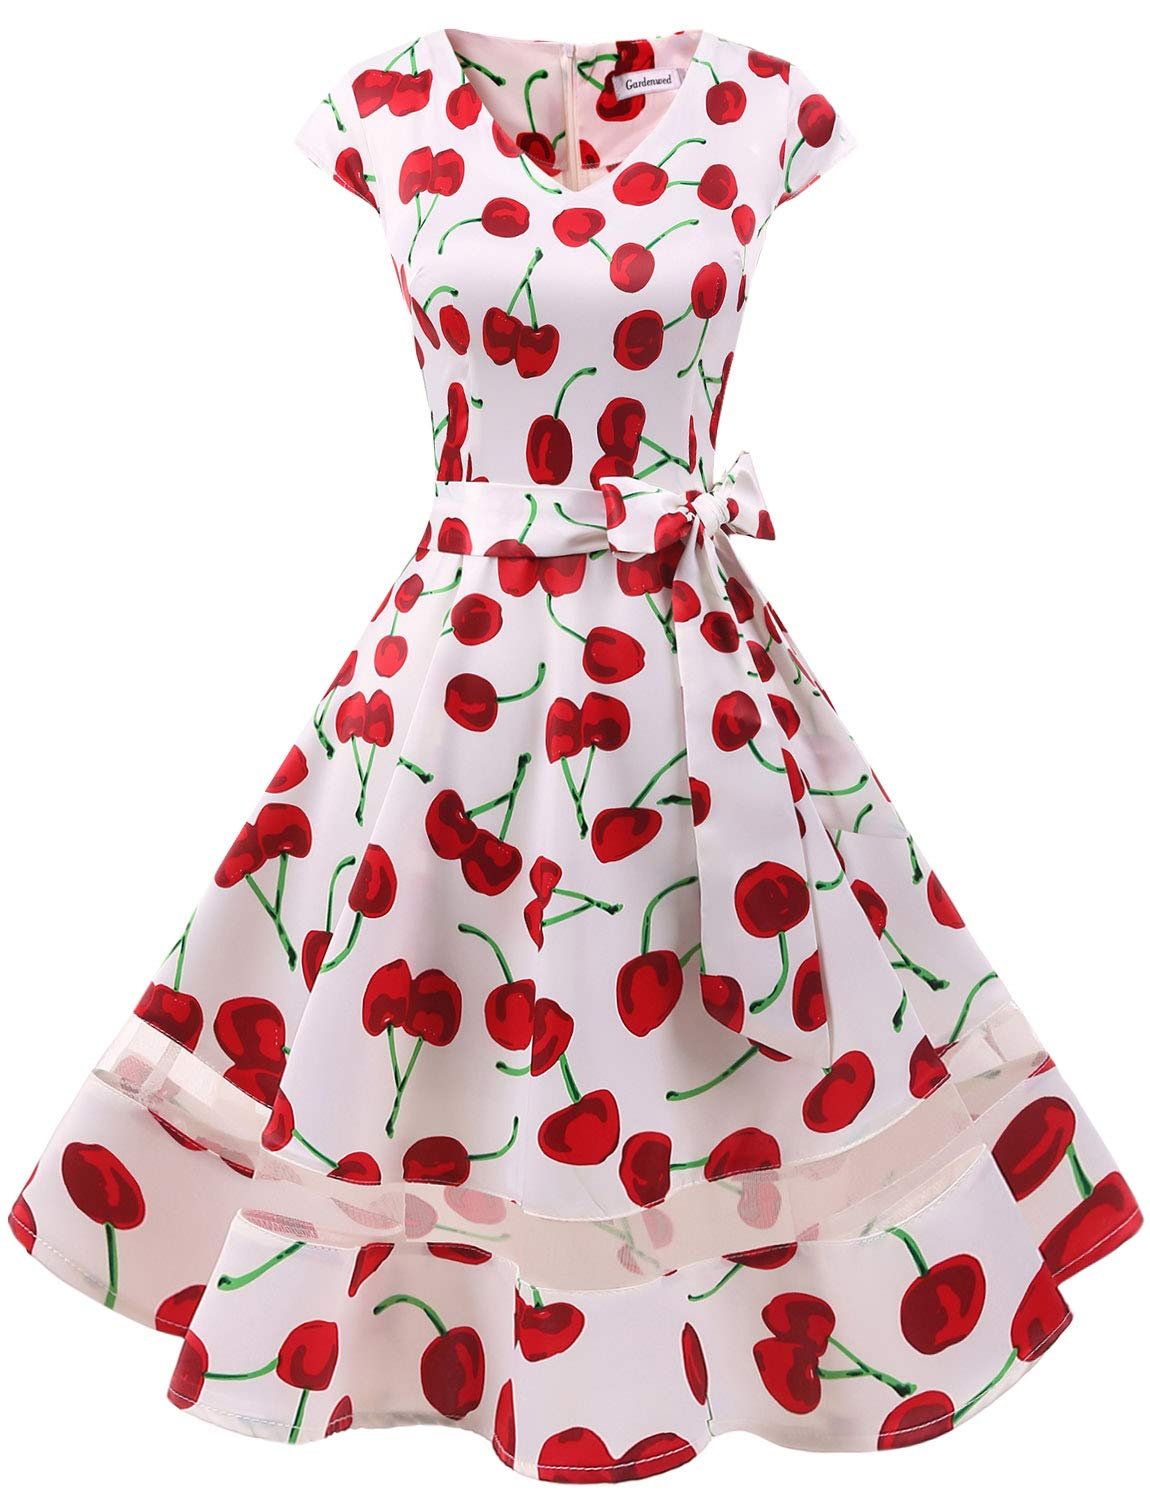 2b7dc5e2c23 Gardenwed Women s 1950s Rockabilly Cocktail Party Dress Retro Vintage Swing  Dress Cap-Sleeve V Neck White Cherry-L